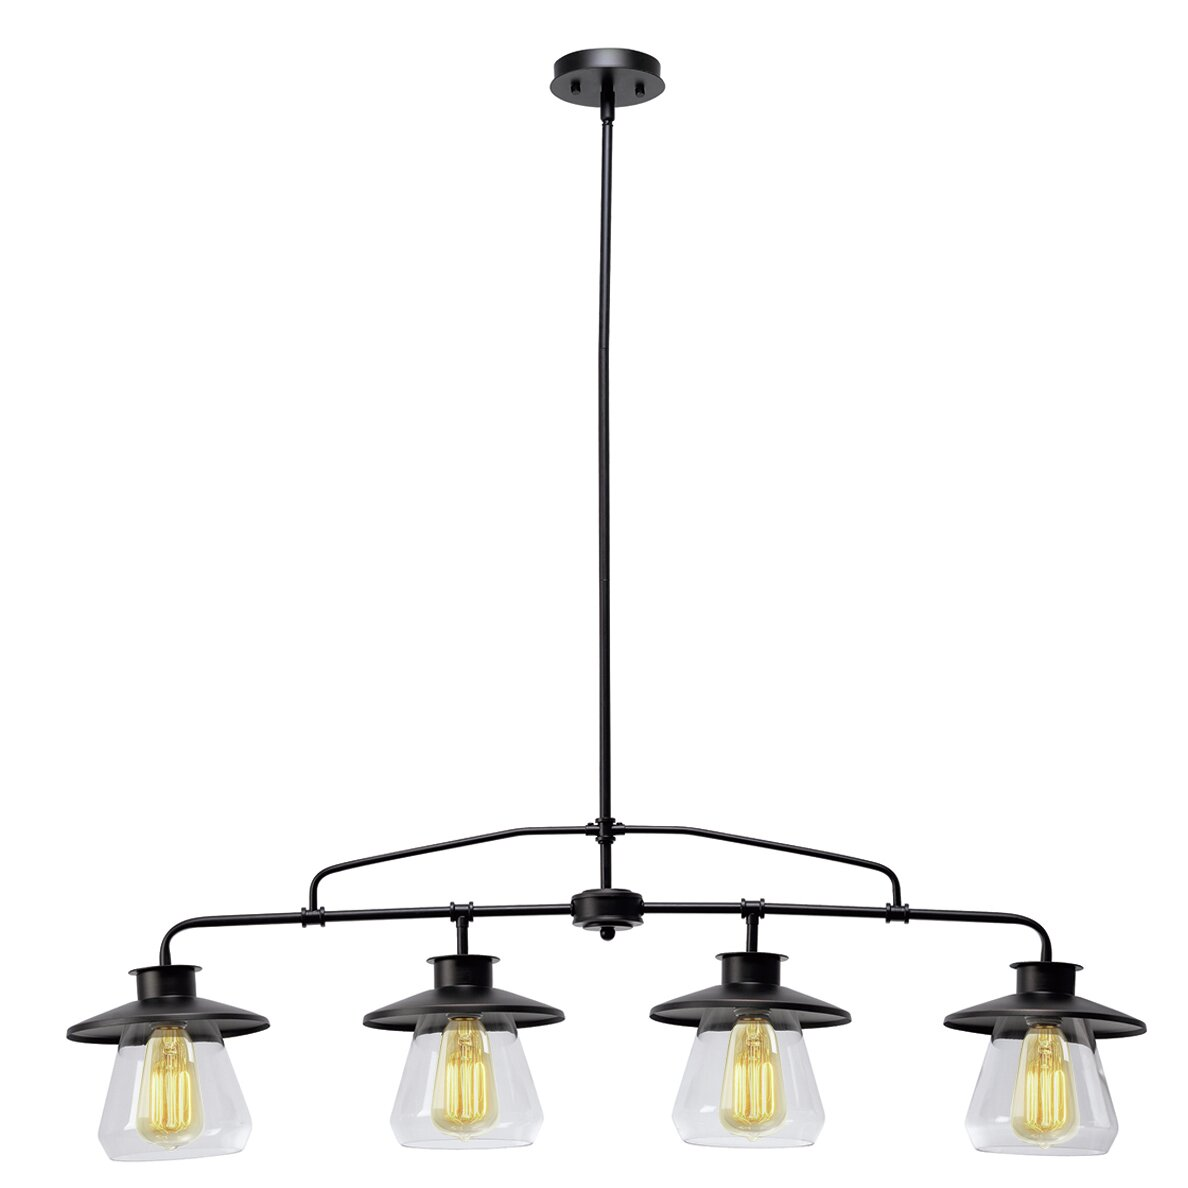 Globe electric company angelica 4 light kitchen island pendant reviews wayfair - Angelica kitchen delivery ...